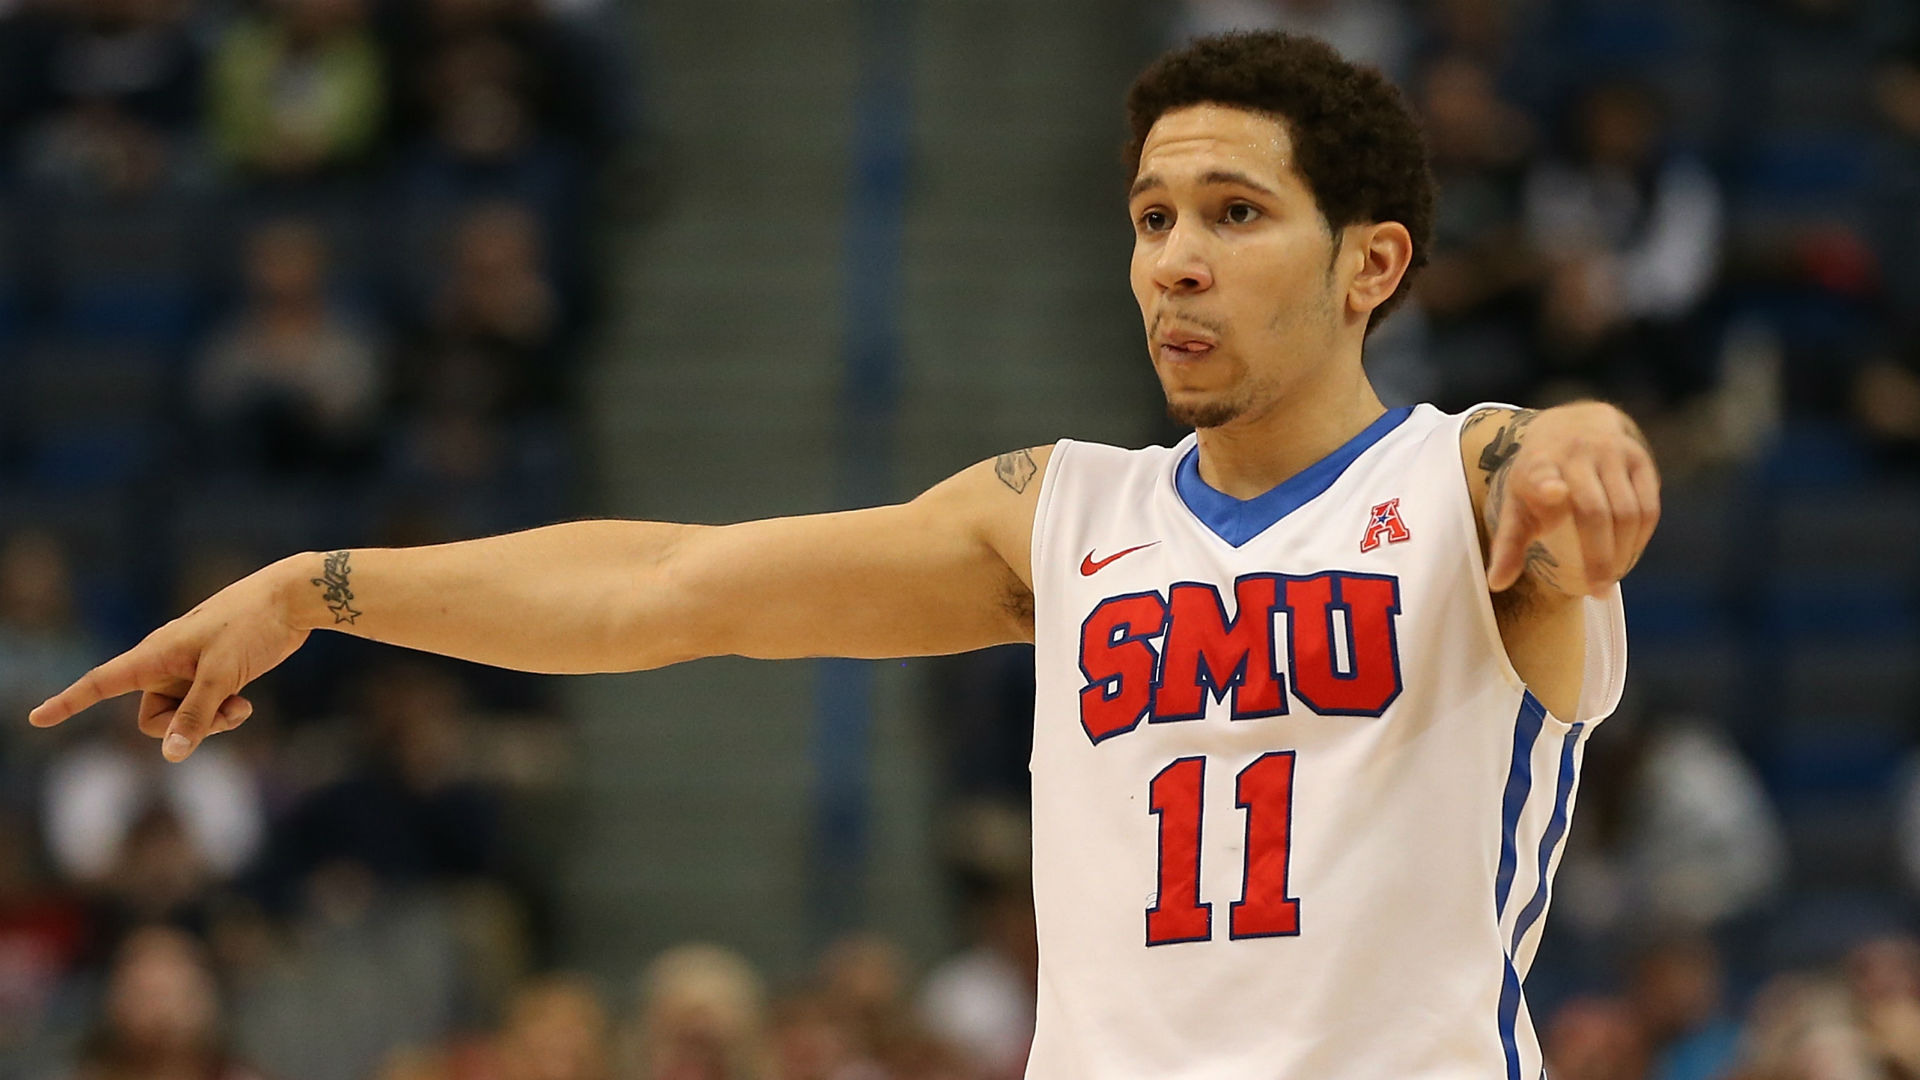 SMU's Nic Moore joining Kansas for World University Games